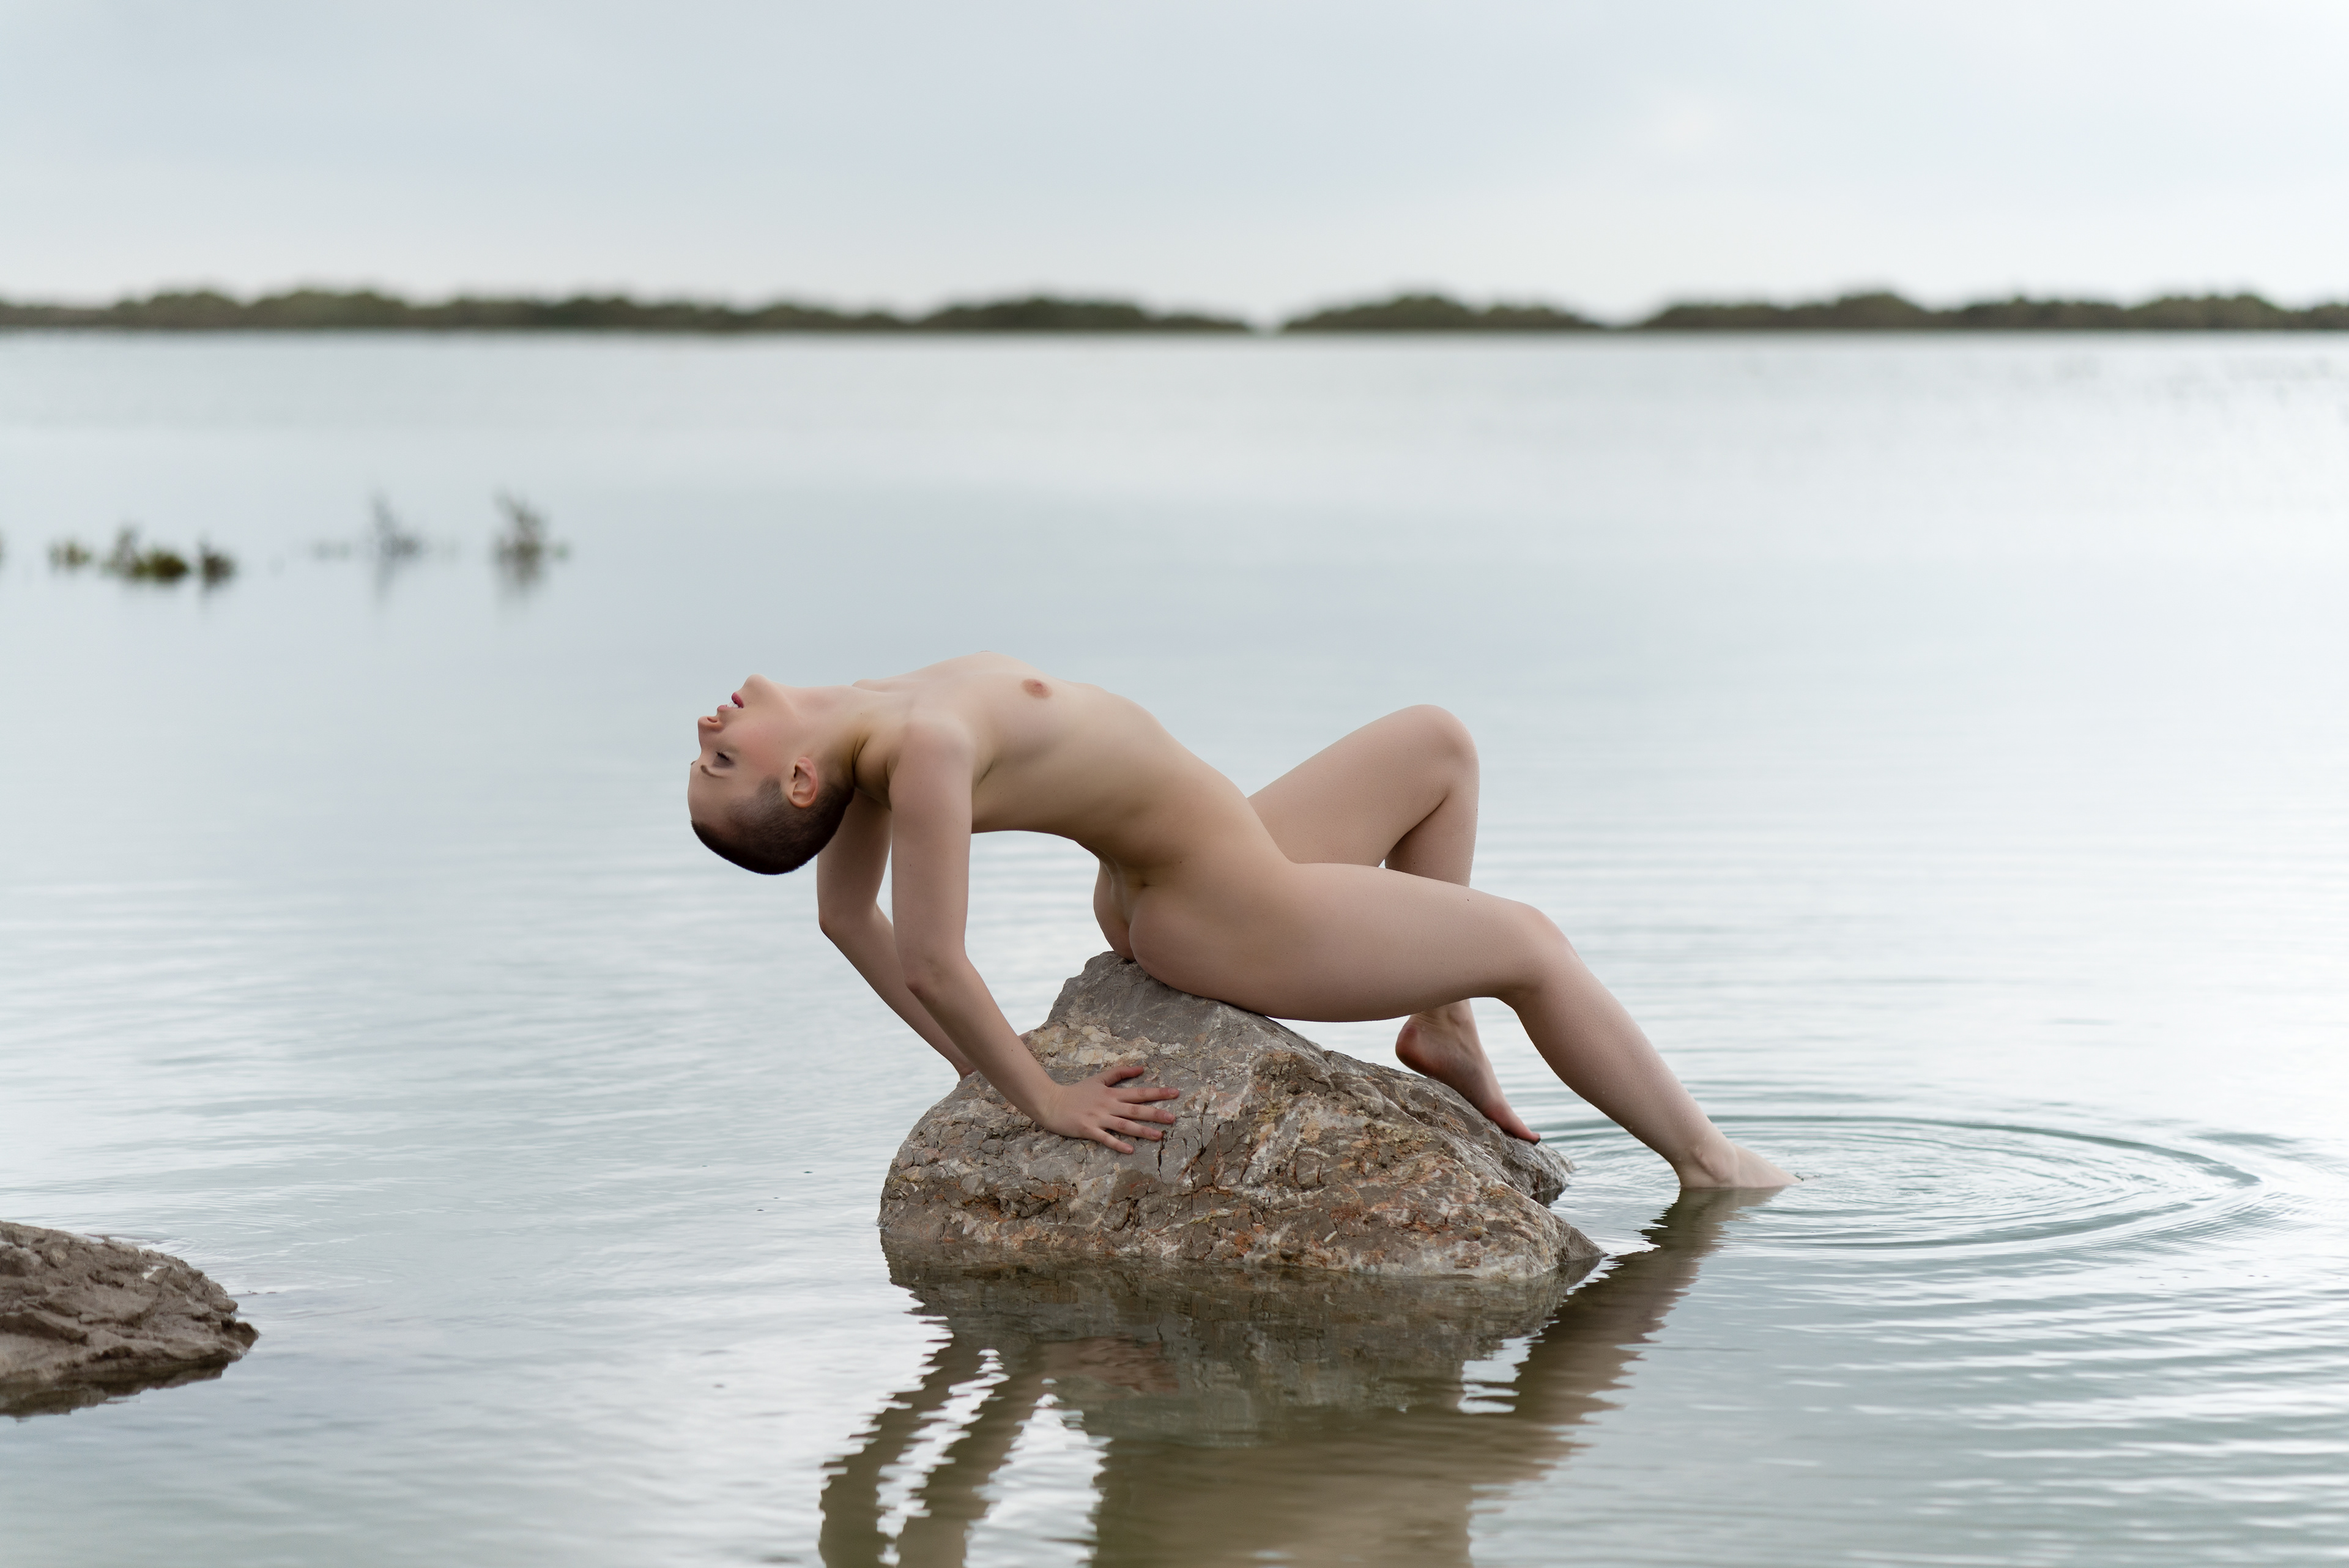 Nude on the water #5